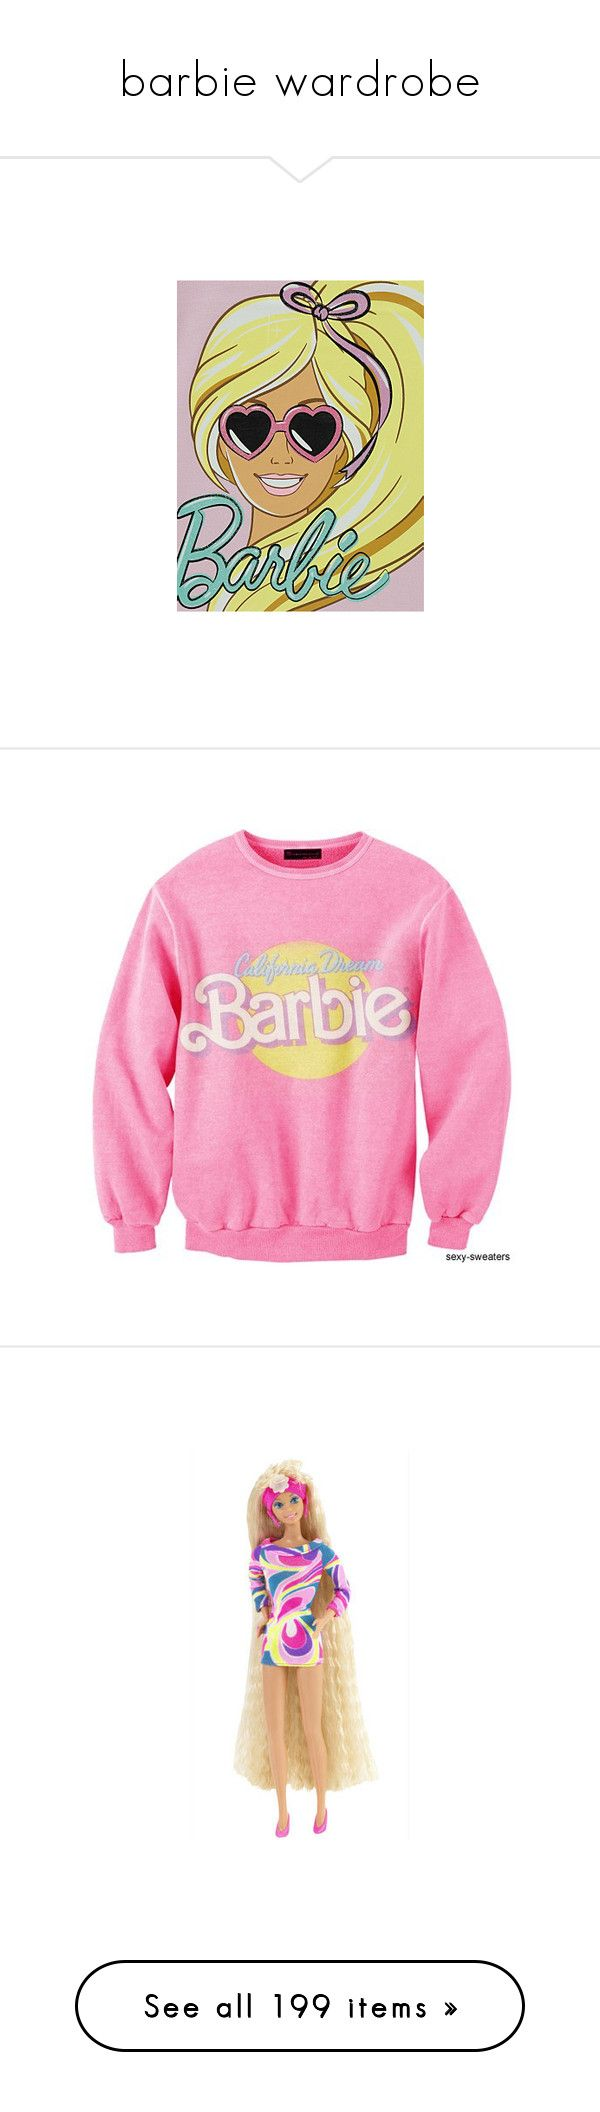 """""""barbie wardrobe"""" by lizzynupa ❤ liked on Polyvore featuring text, barbie, dolls, tops, sweaters, long sleeves, long sleeve tops, pink top, pink long sleeve top and dresses"""